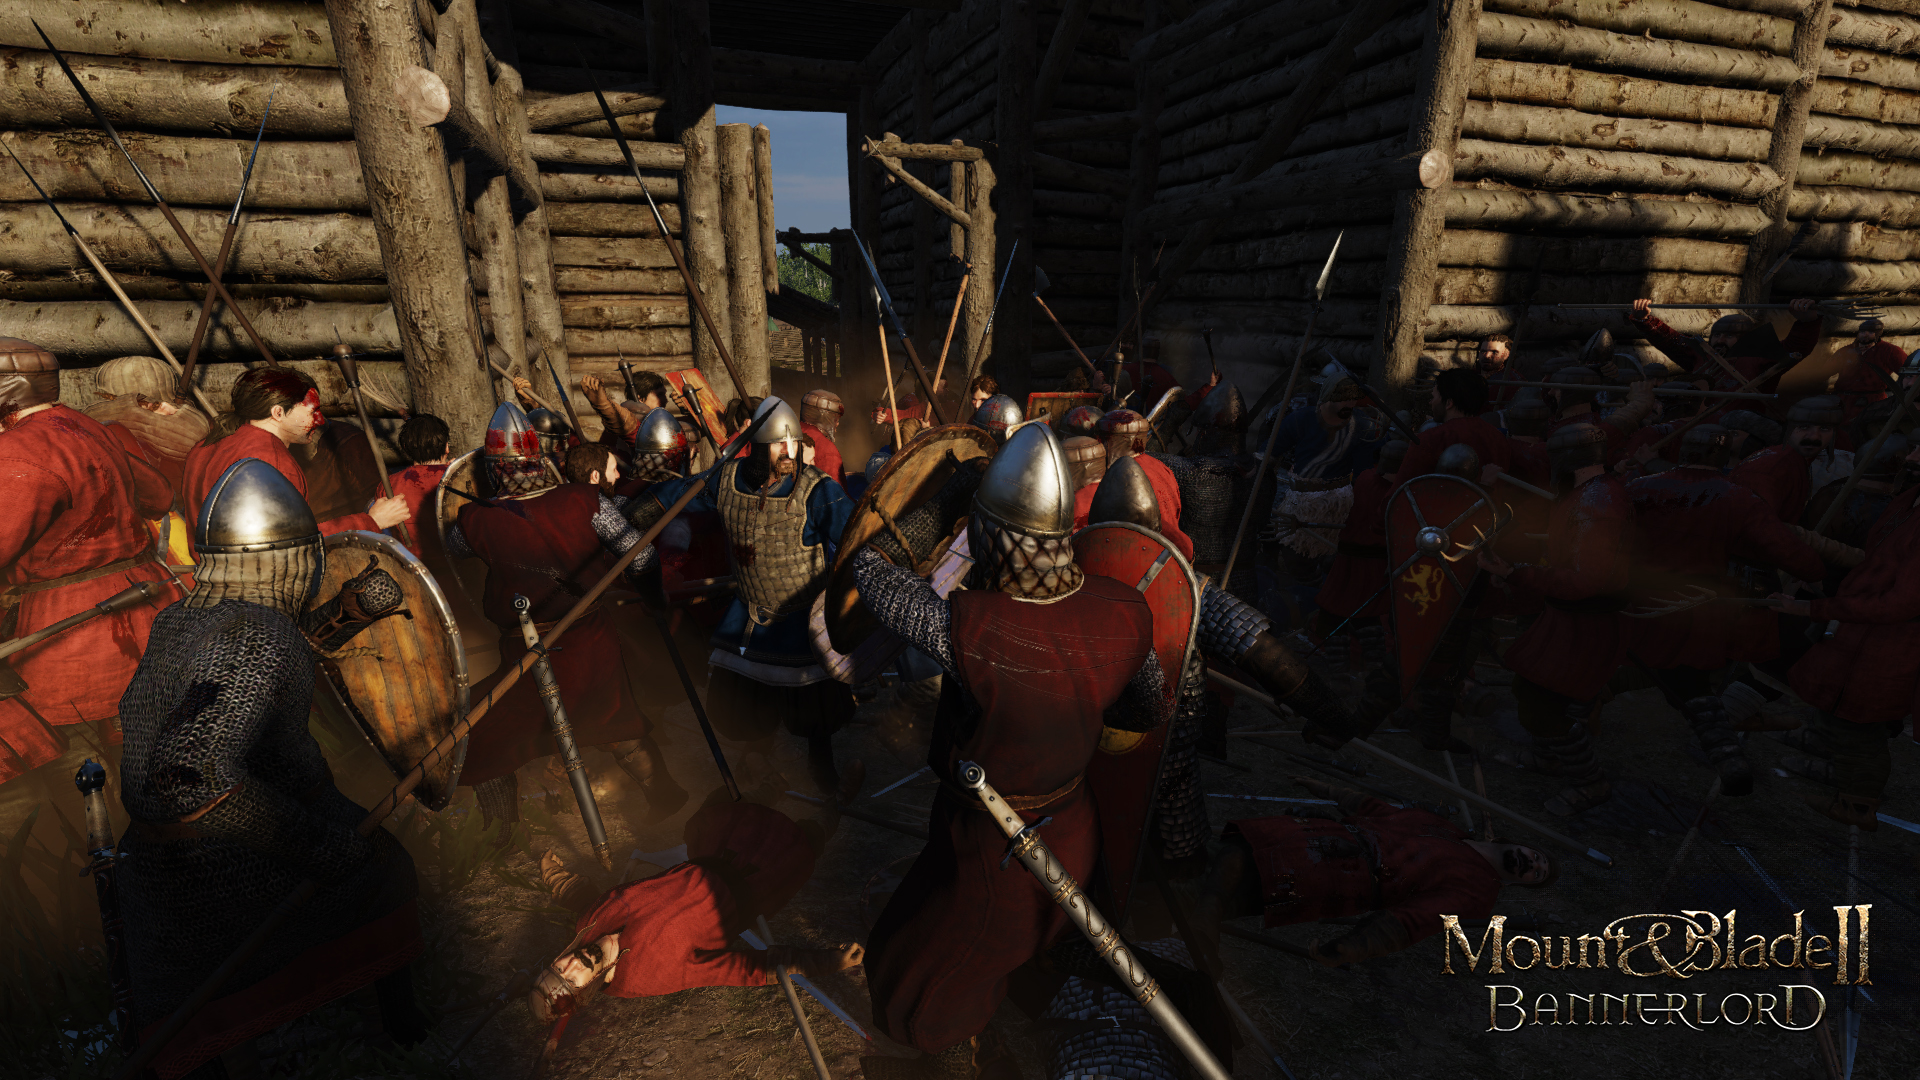 Mount Blade Ii Bannerlord At Gamescom Everything You Need To Know Player One